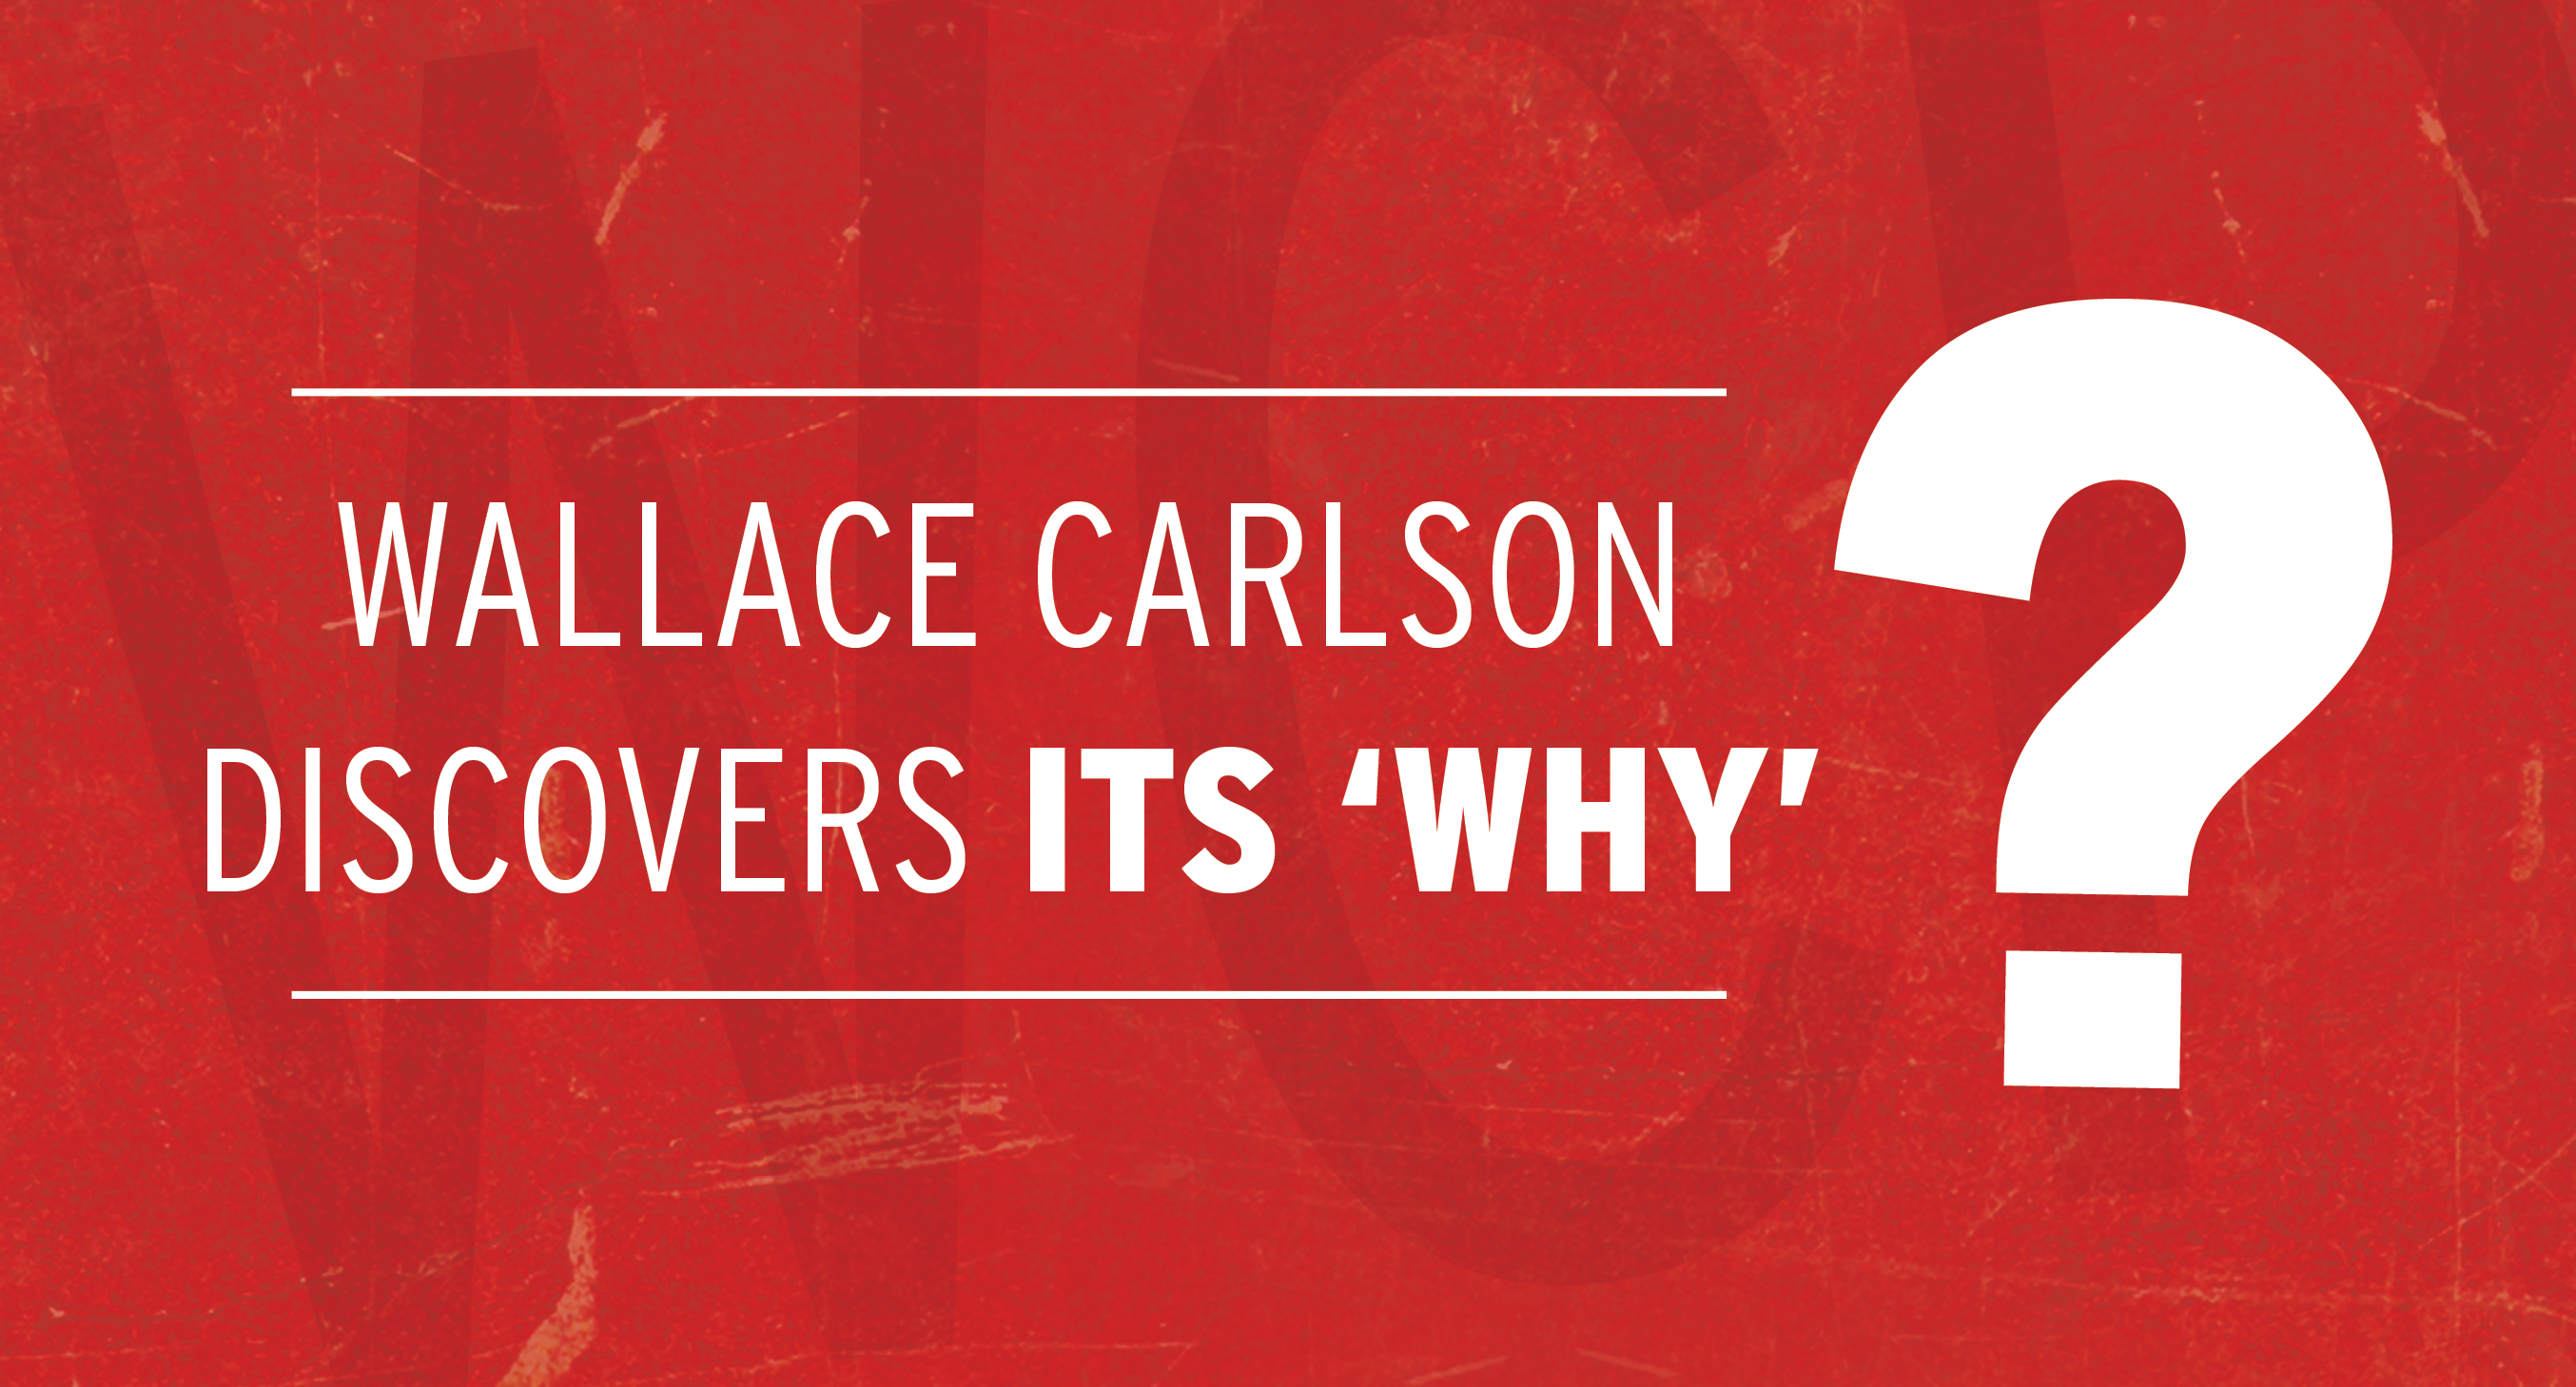 WALLACE CARLSON DISCOVERS ITS 'WHY'